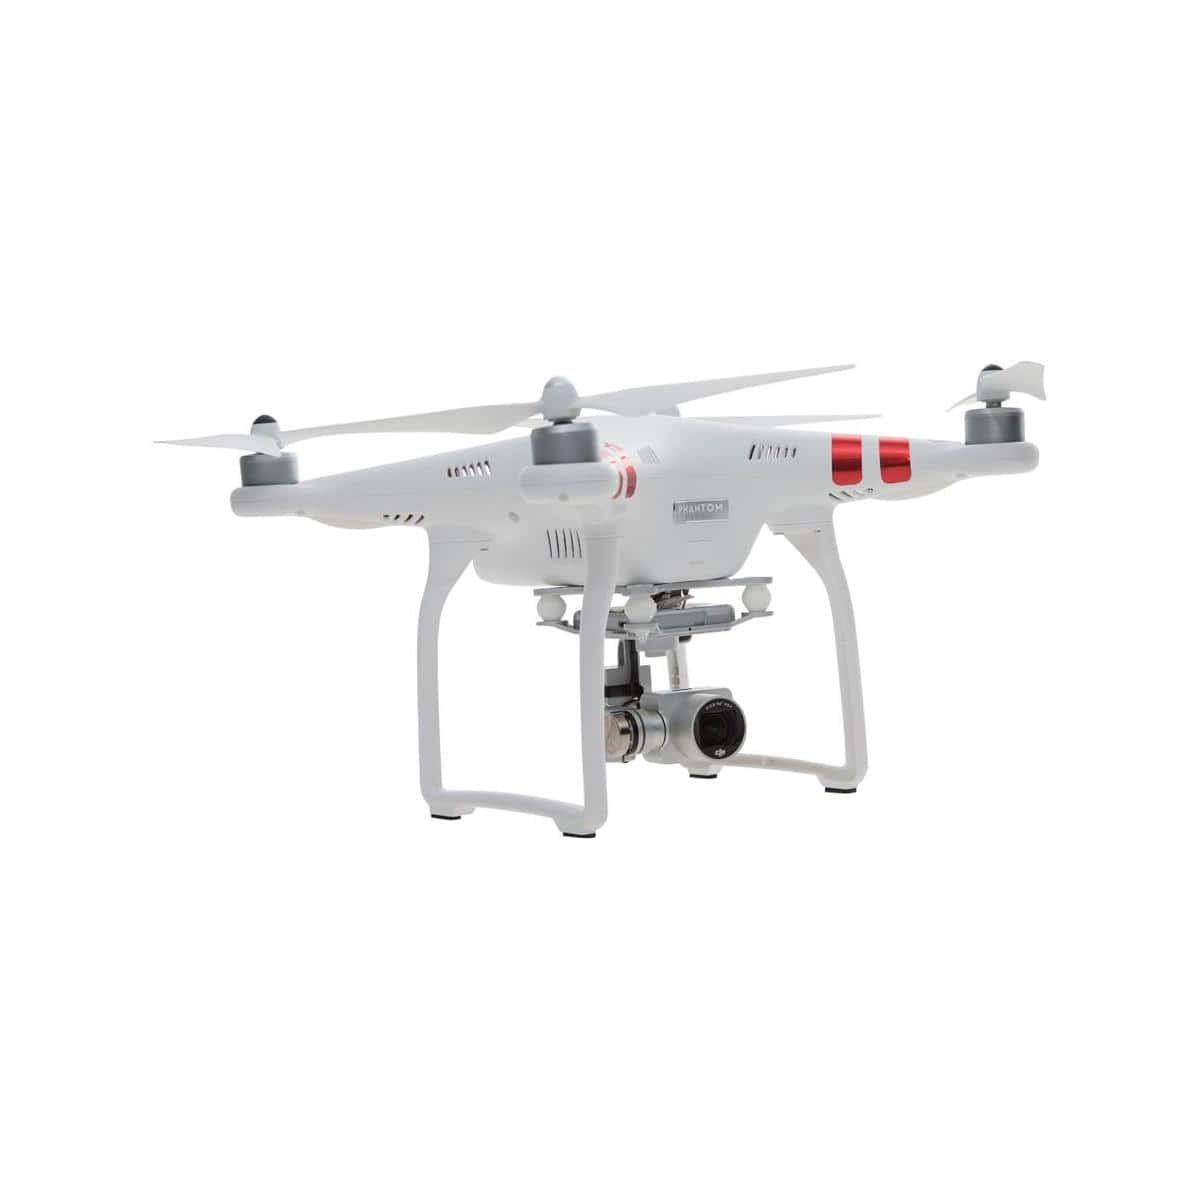 DJI Phantom 3 Quadcopter w/ 3-Axis Gimbal & 2.7k Camera  $499 & More + Free S&H